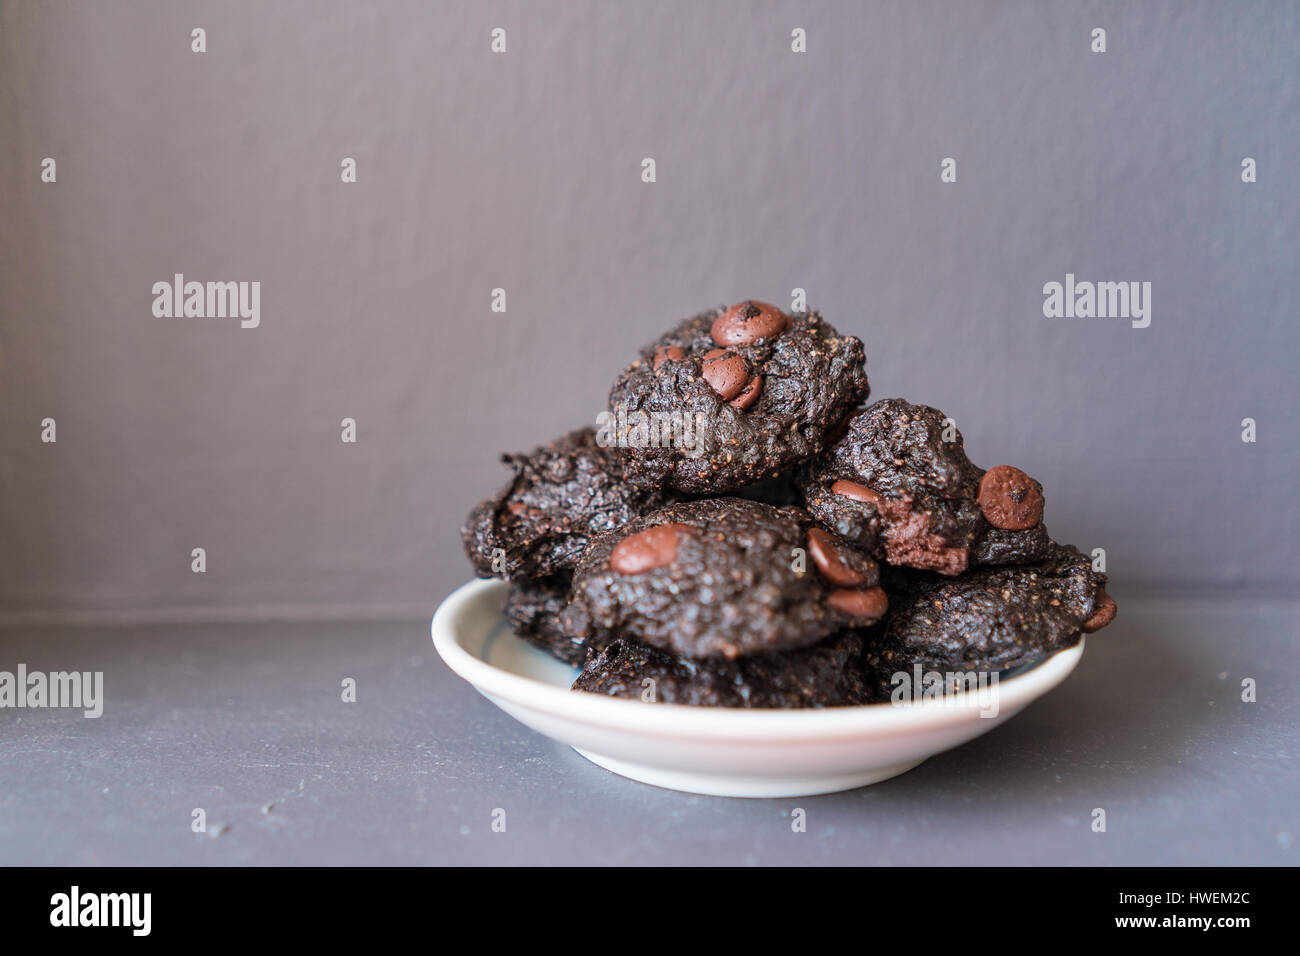 Stack of Vegan chocolate brownie cookie on white round plate - Stock Image